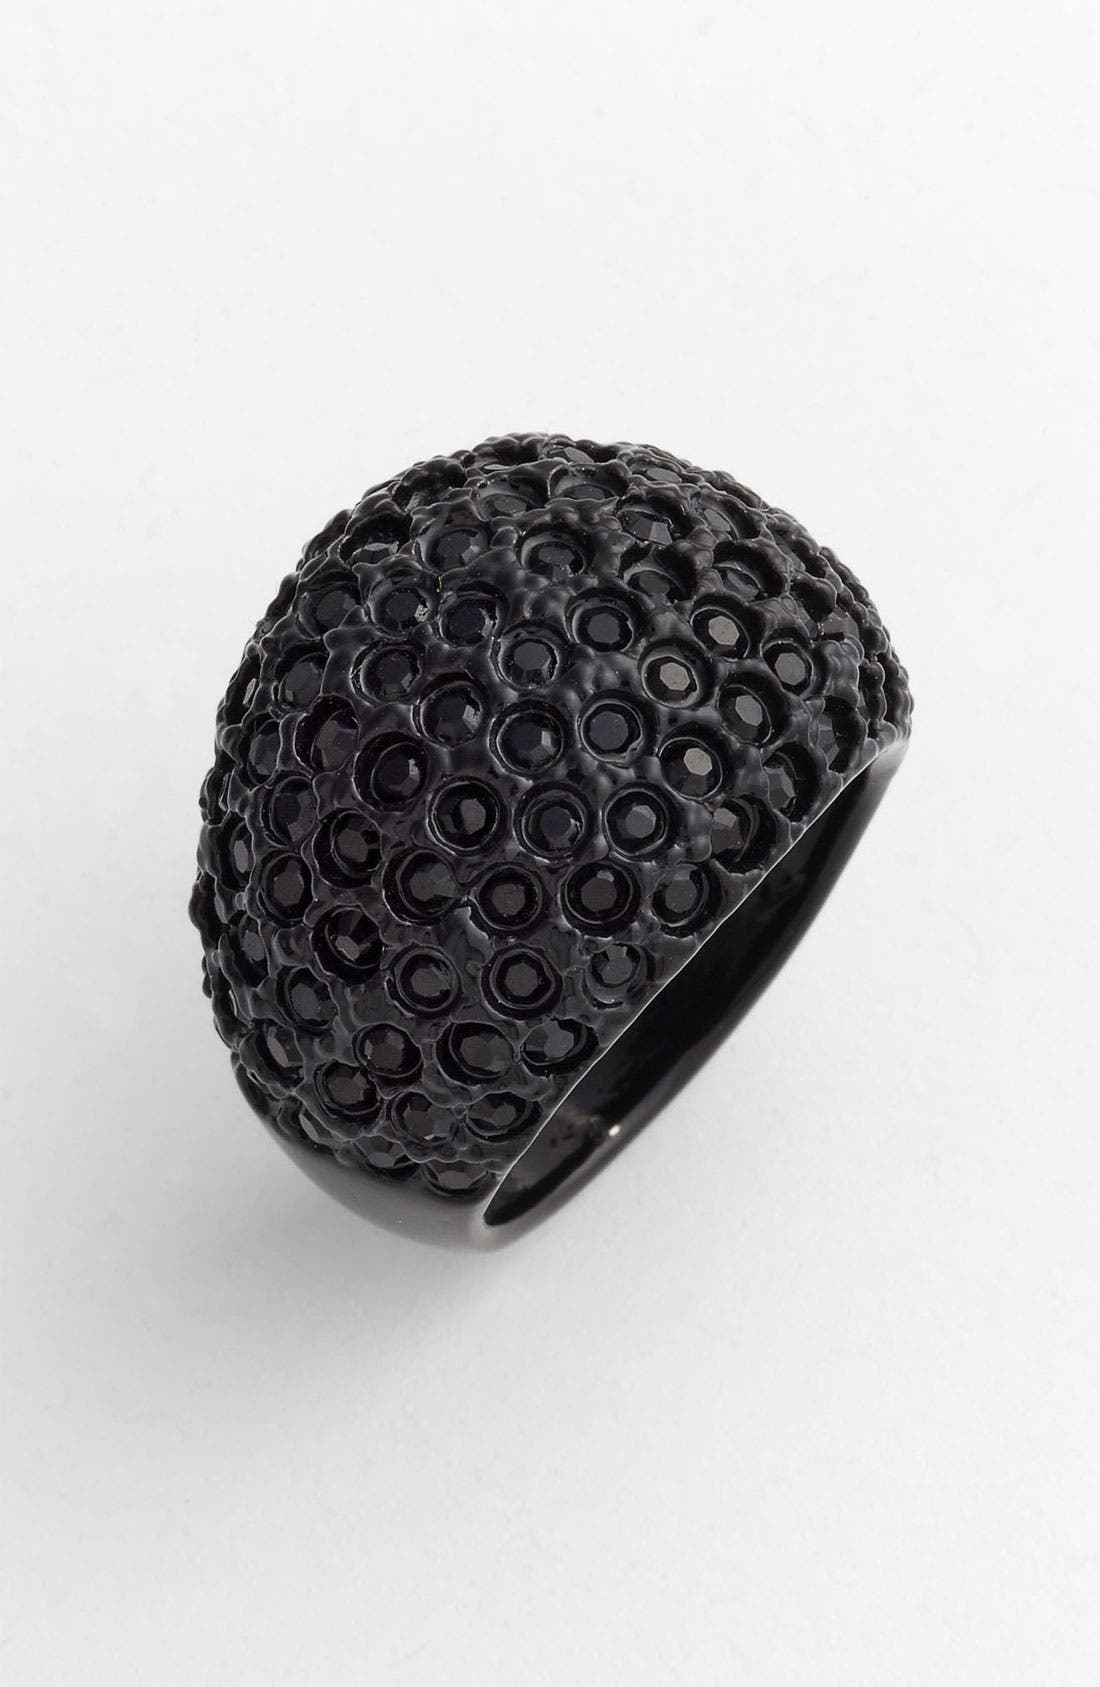 Alternate Image 1 Selected - St. John Collection 'Black Clad' Swarovski Crystal Dome Ring